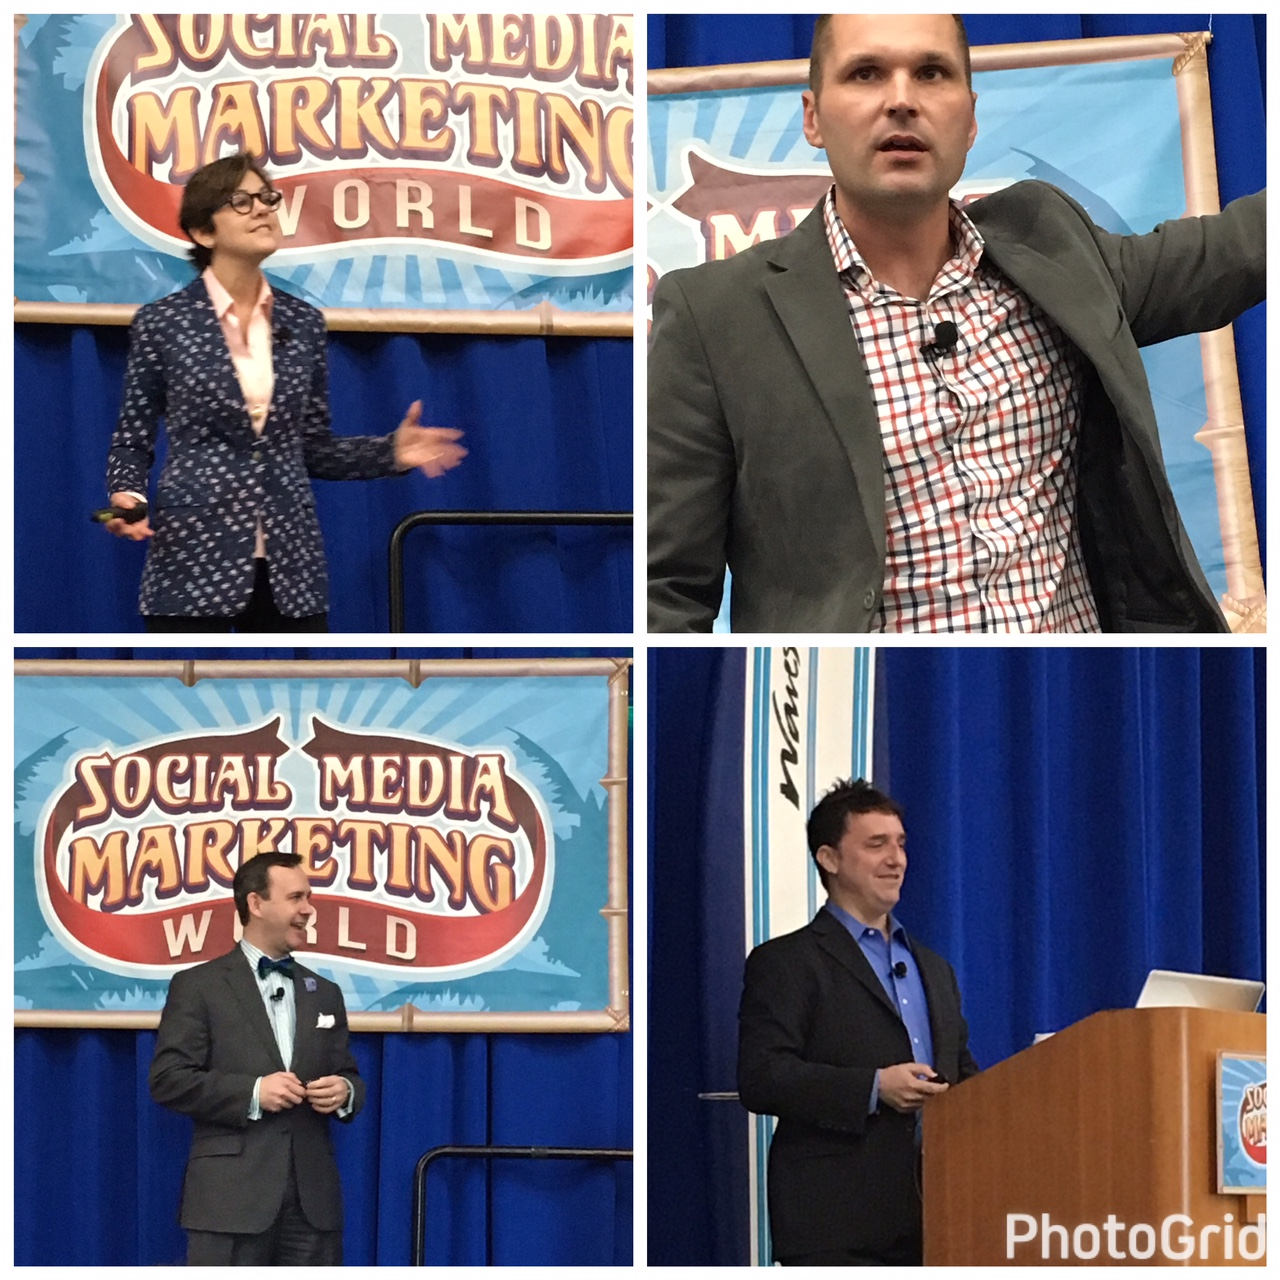 8 Things I Learned About Marketing from Social Media Marketing World   Social Media Today